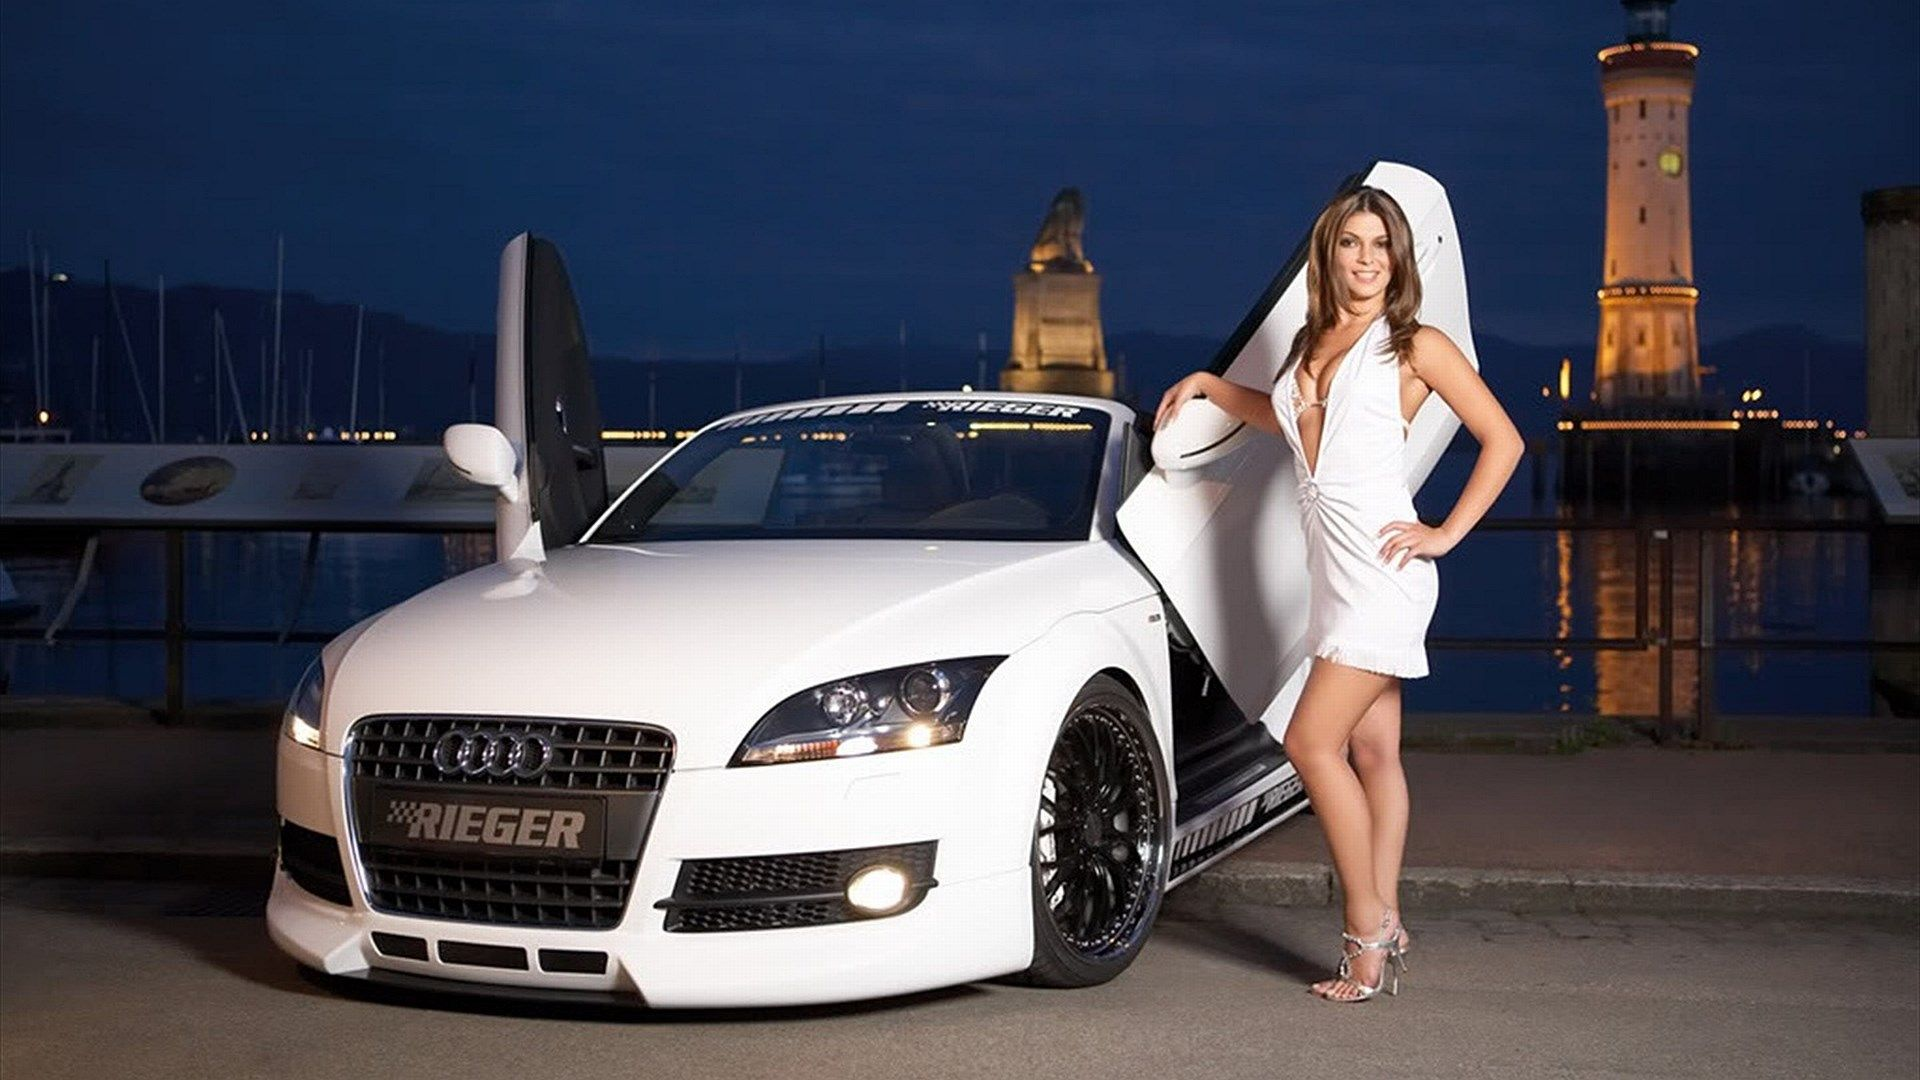 1920x1080 Amazing Girls And Cars Audi Girl Car Girls Girl With Car